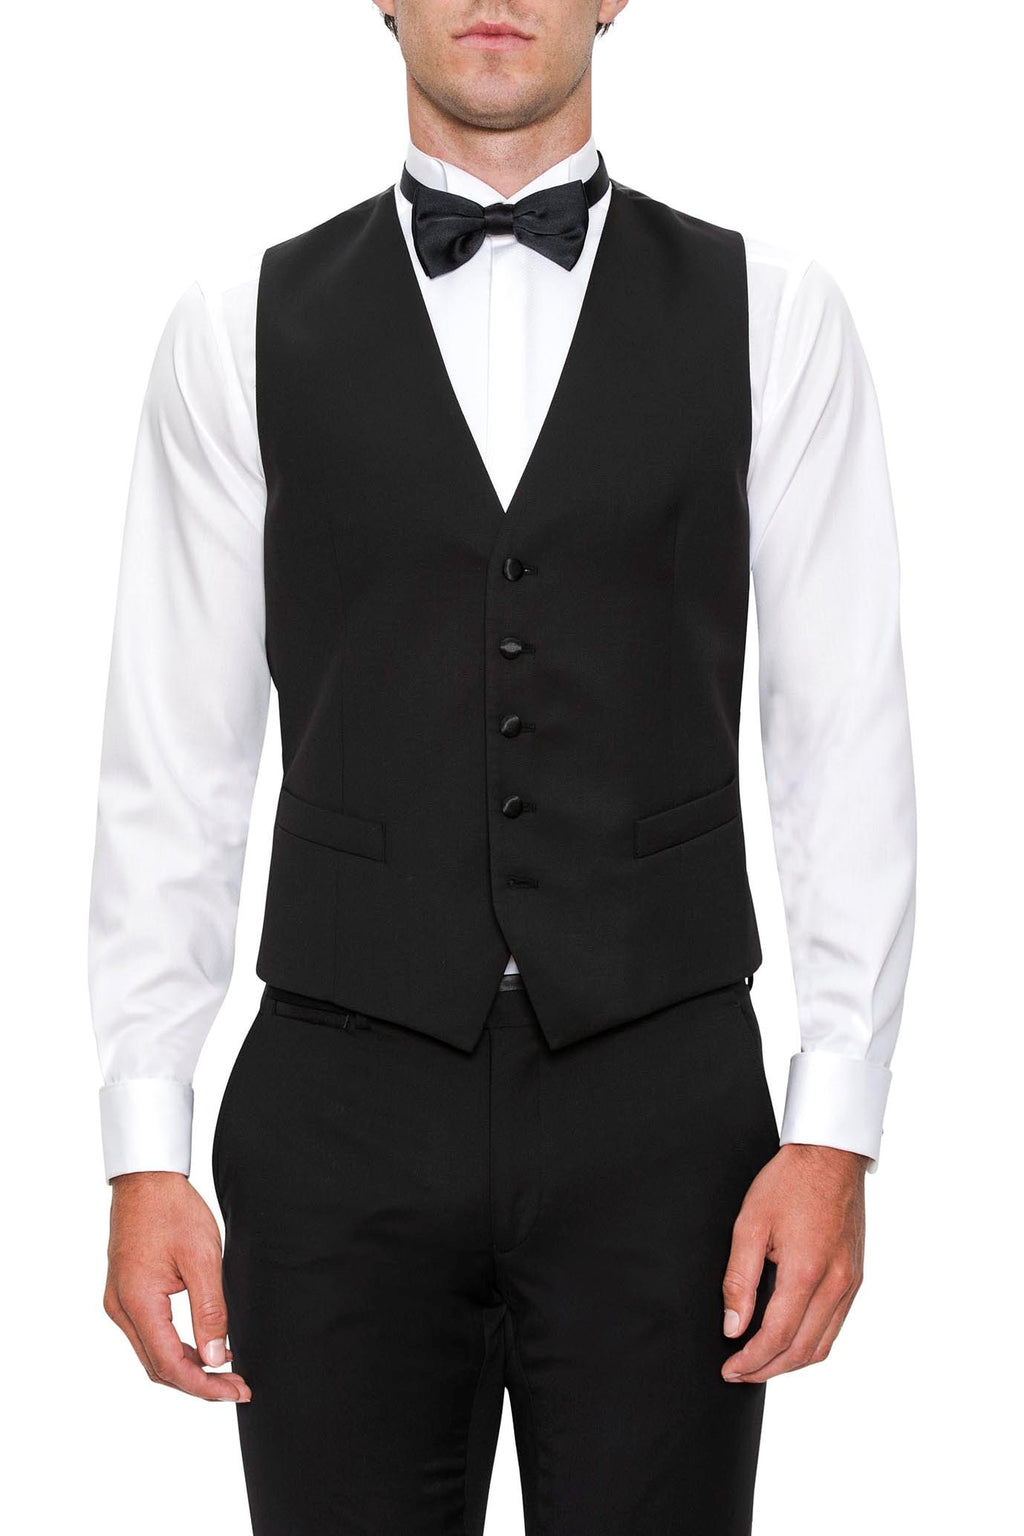 Joe Black Mail Vest - Ignition For Men